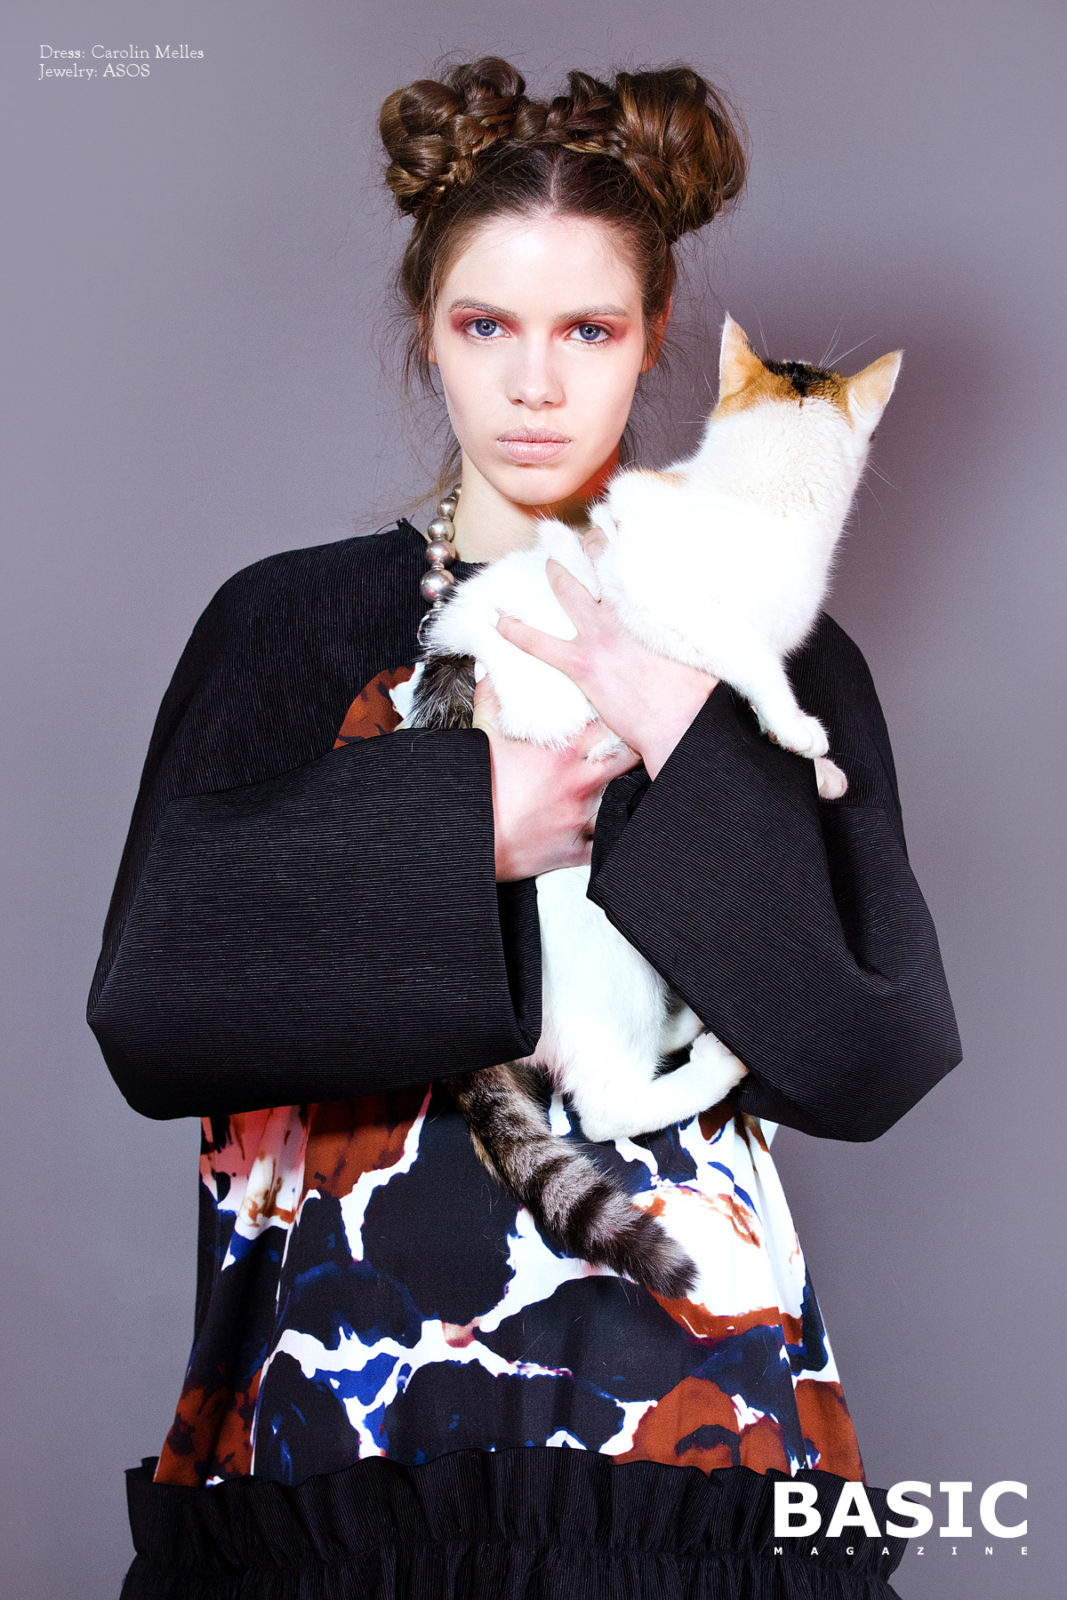 tamara hansen basic magazine wild things fashion (15)